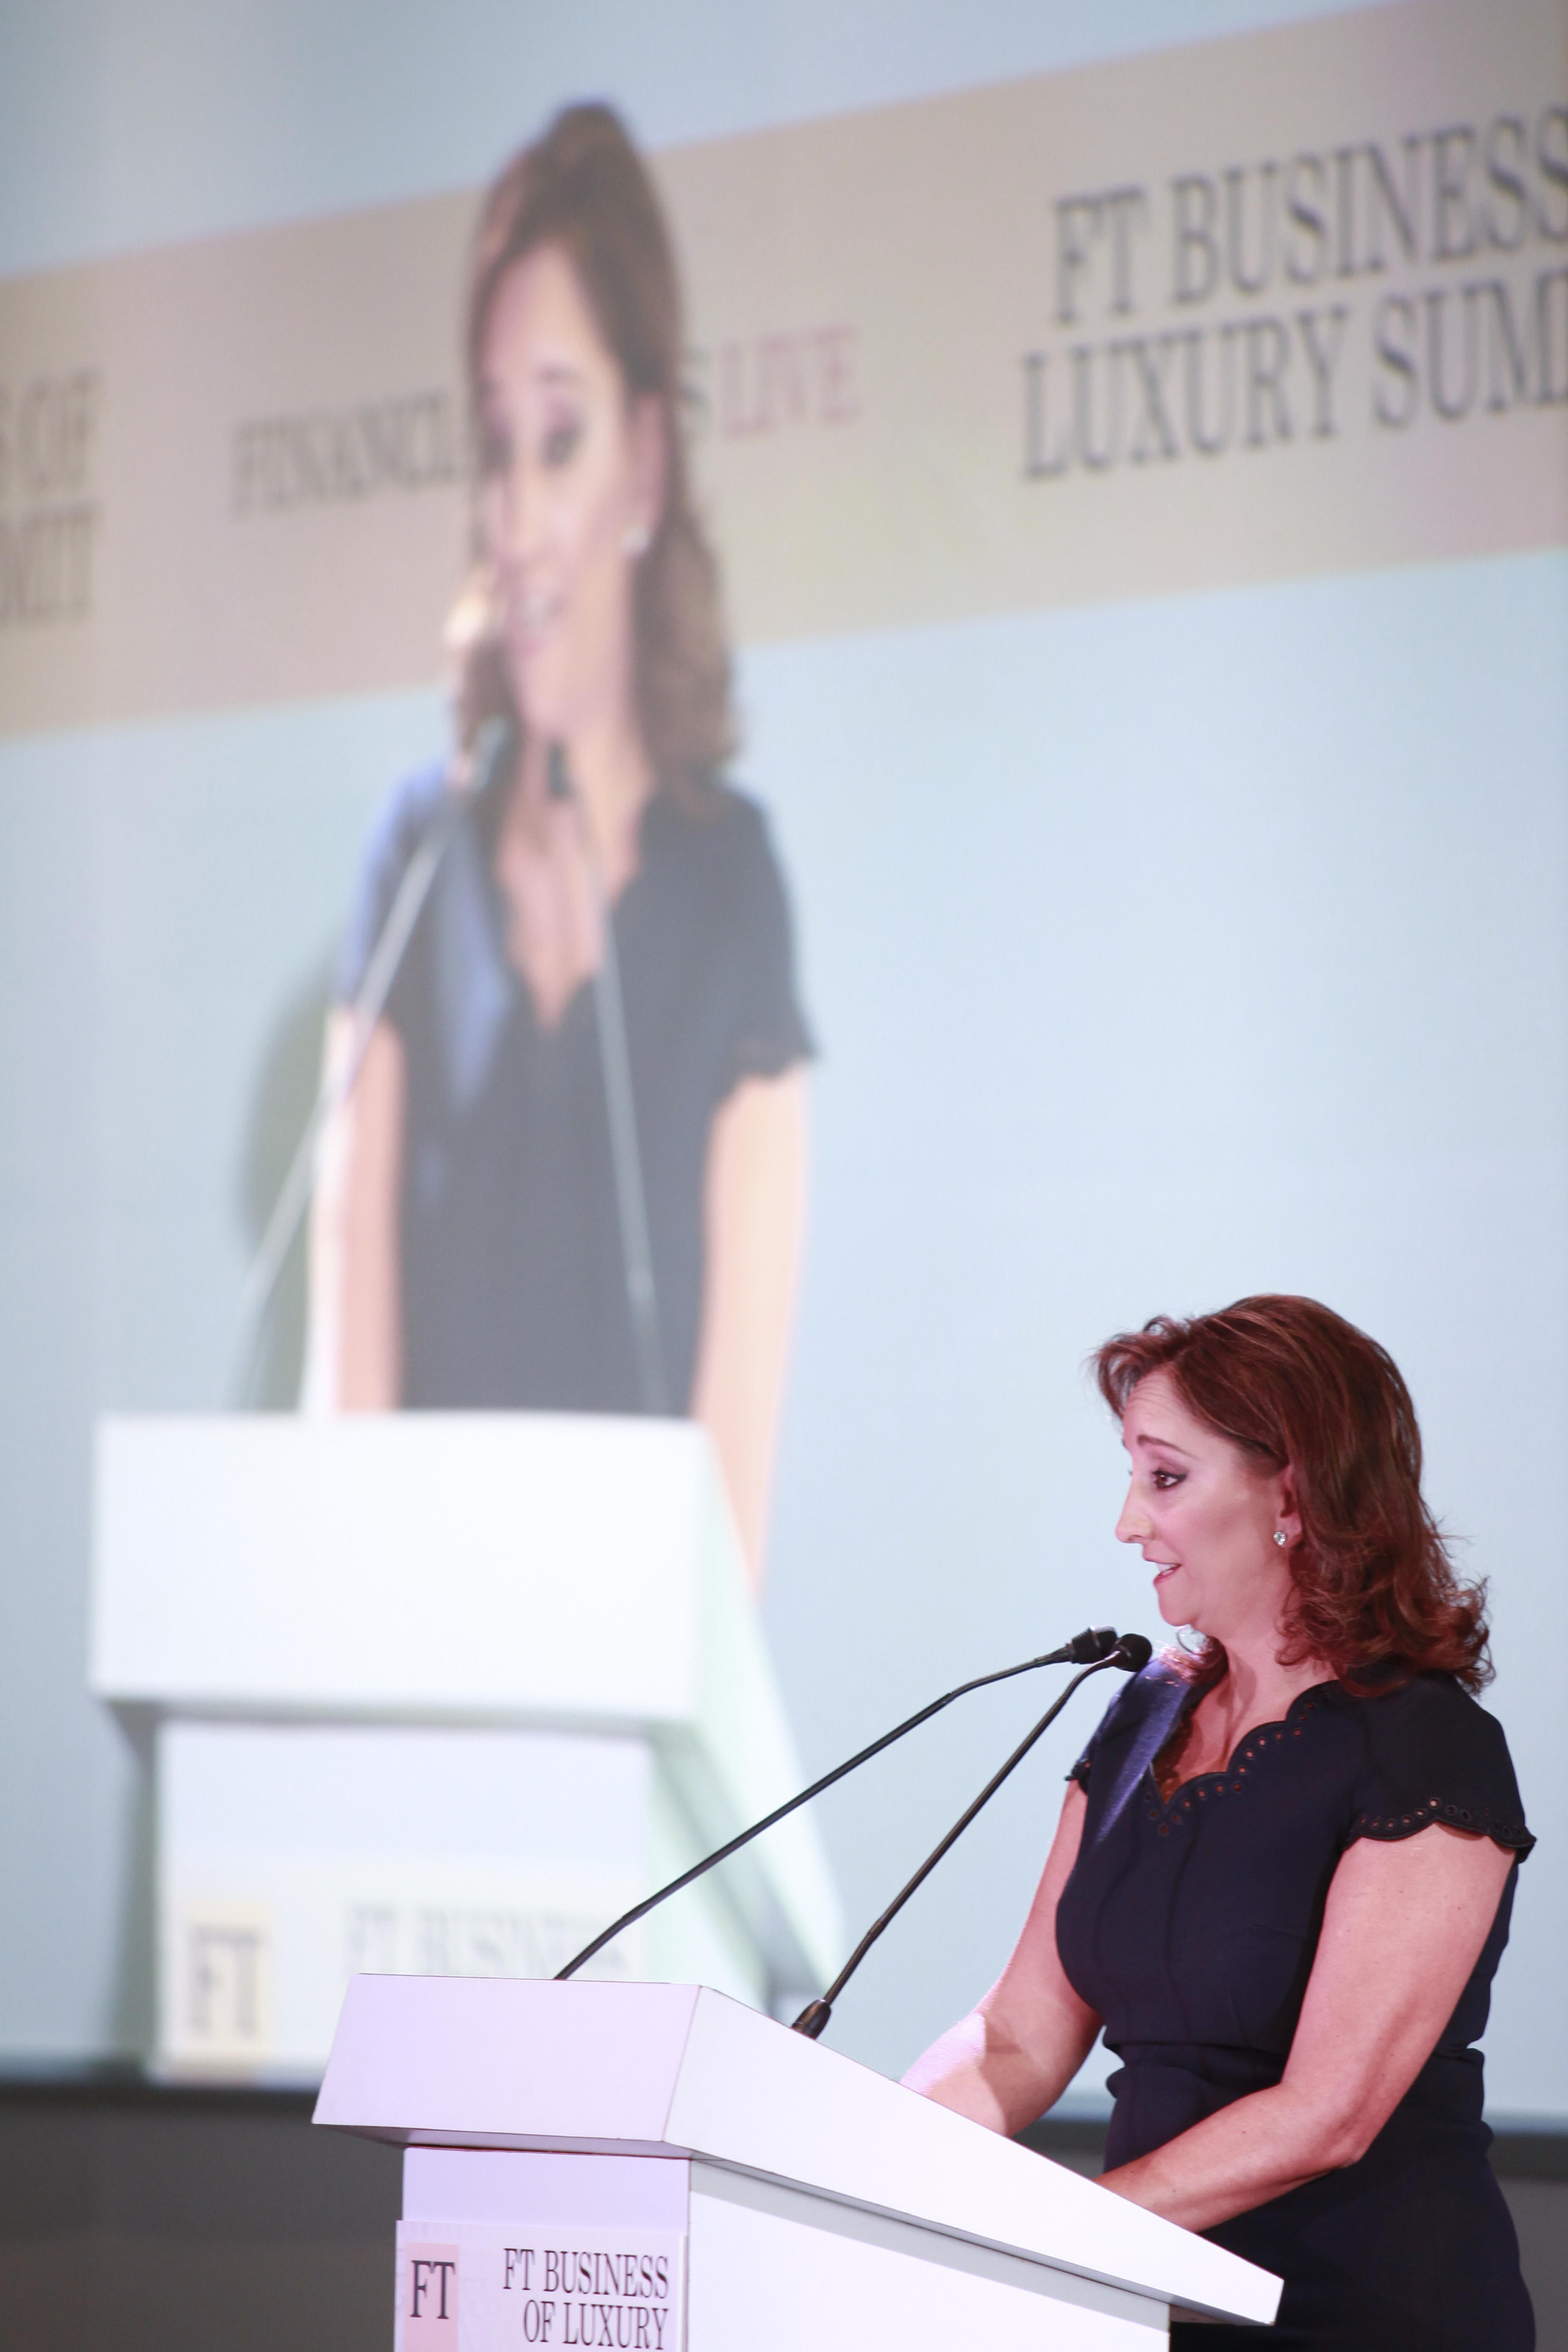 Claudia ruiz massieu ponencia business luxury summit